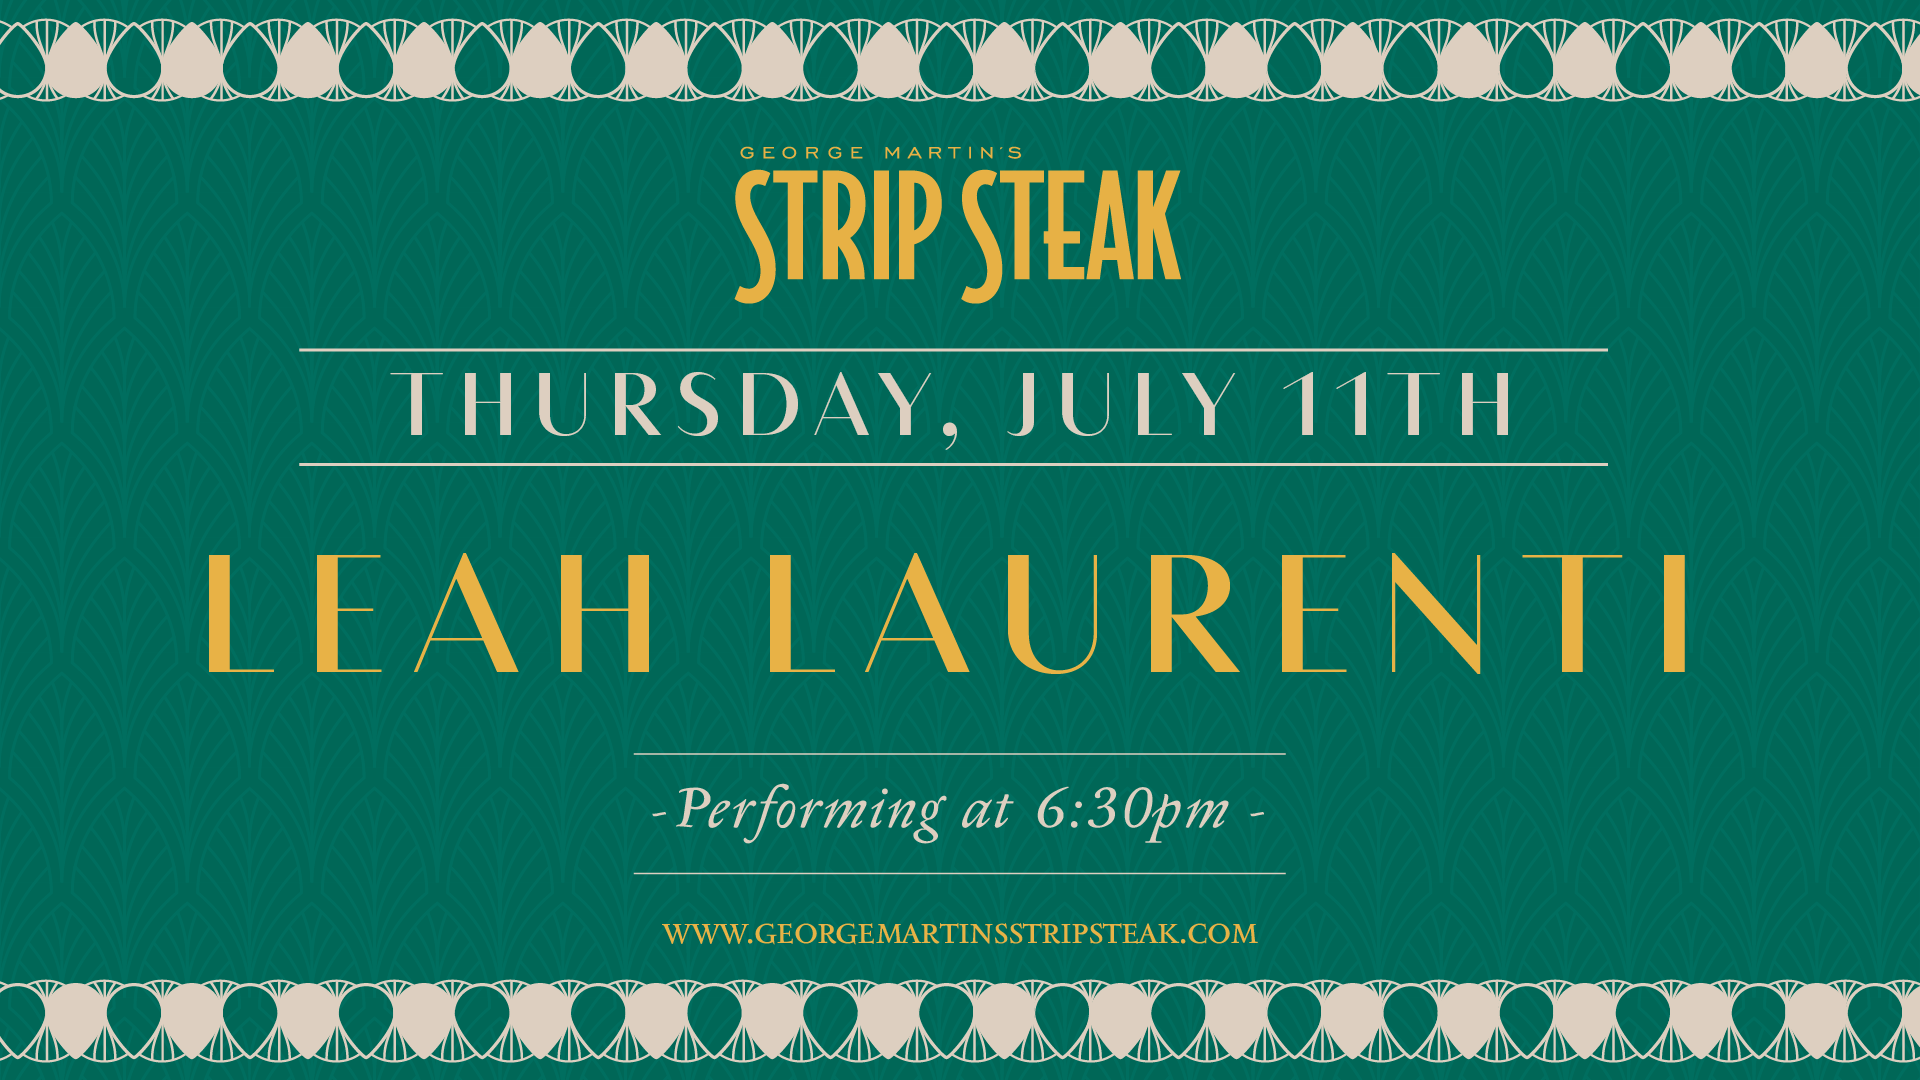 Flyer for live music with Leah Laurenti on July 11th at 6:30pm